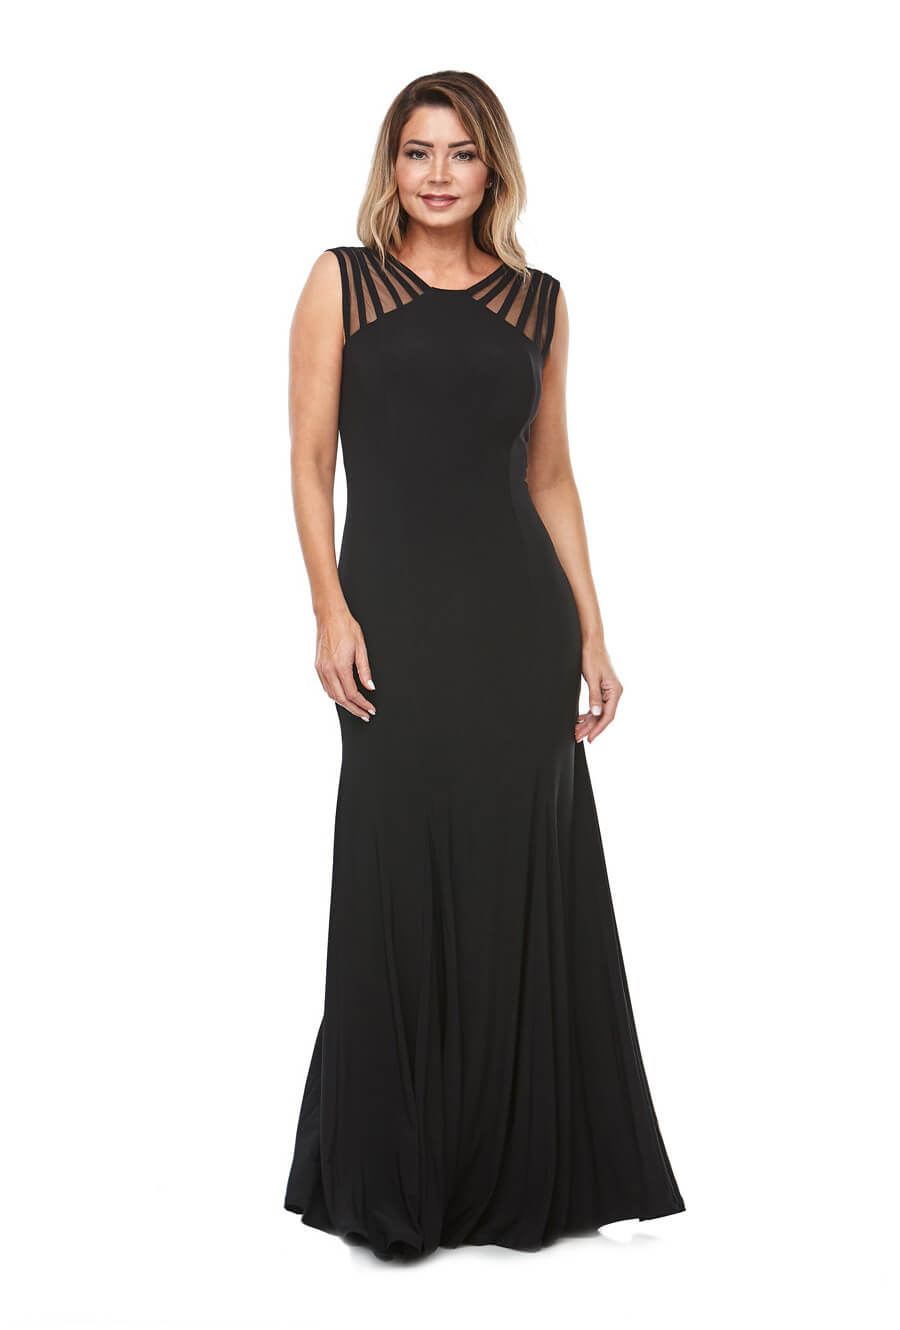 Long stretch jersey gown with waterfall skirt & sheer detail at neckline